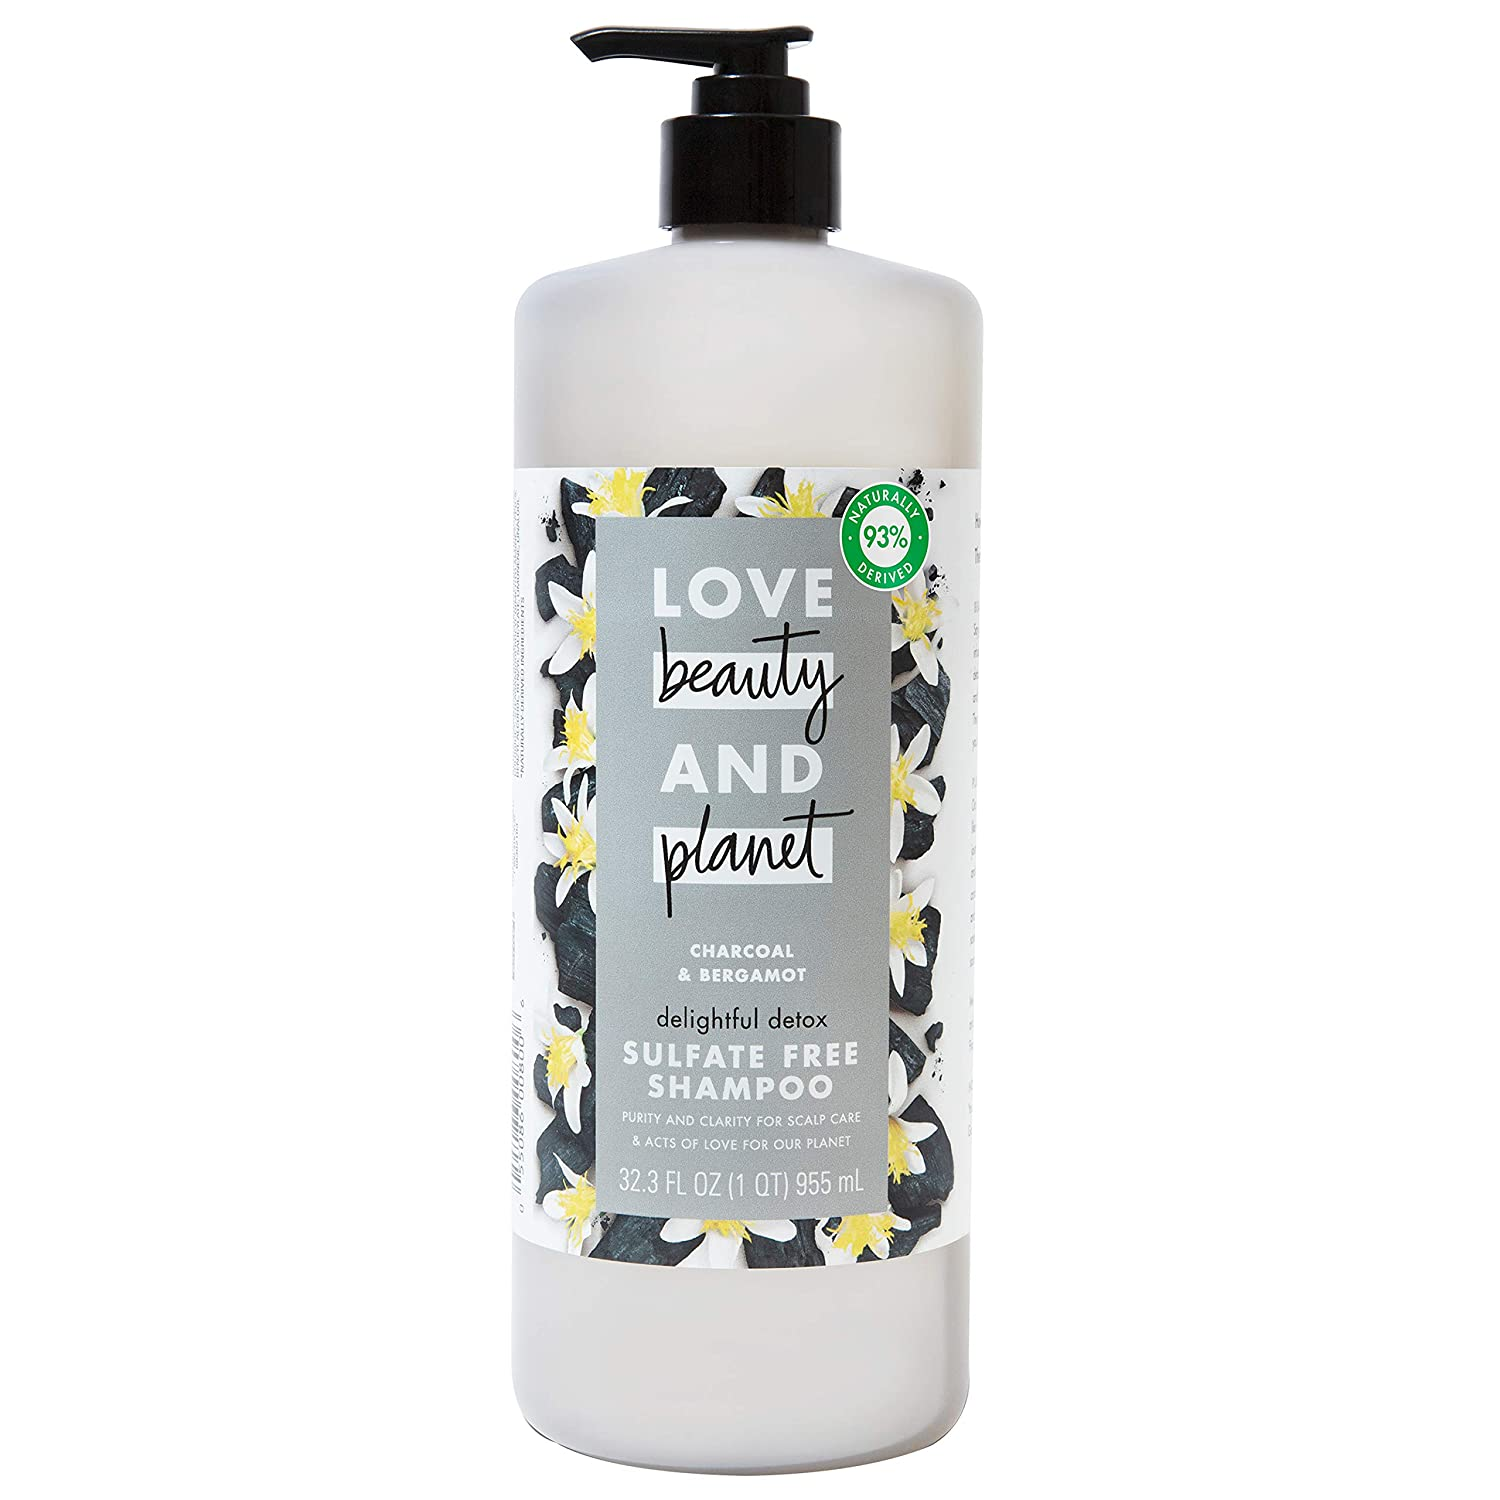 Love Beauty And Planet Delightful Detox Daily Clarifying Sulfate-Free Shampoo Cleansed Hair Care Charcoal and Bergamot Silicone-free, Paraben-free, Vegan Shampoo 32.3 oz